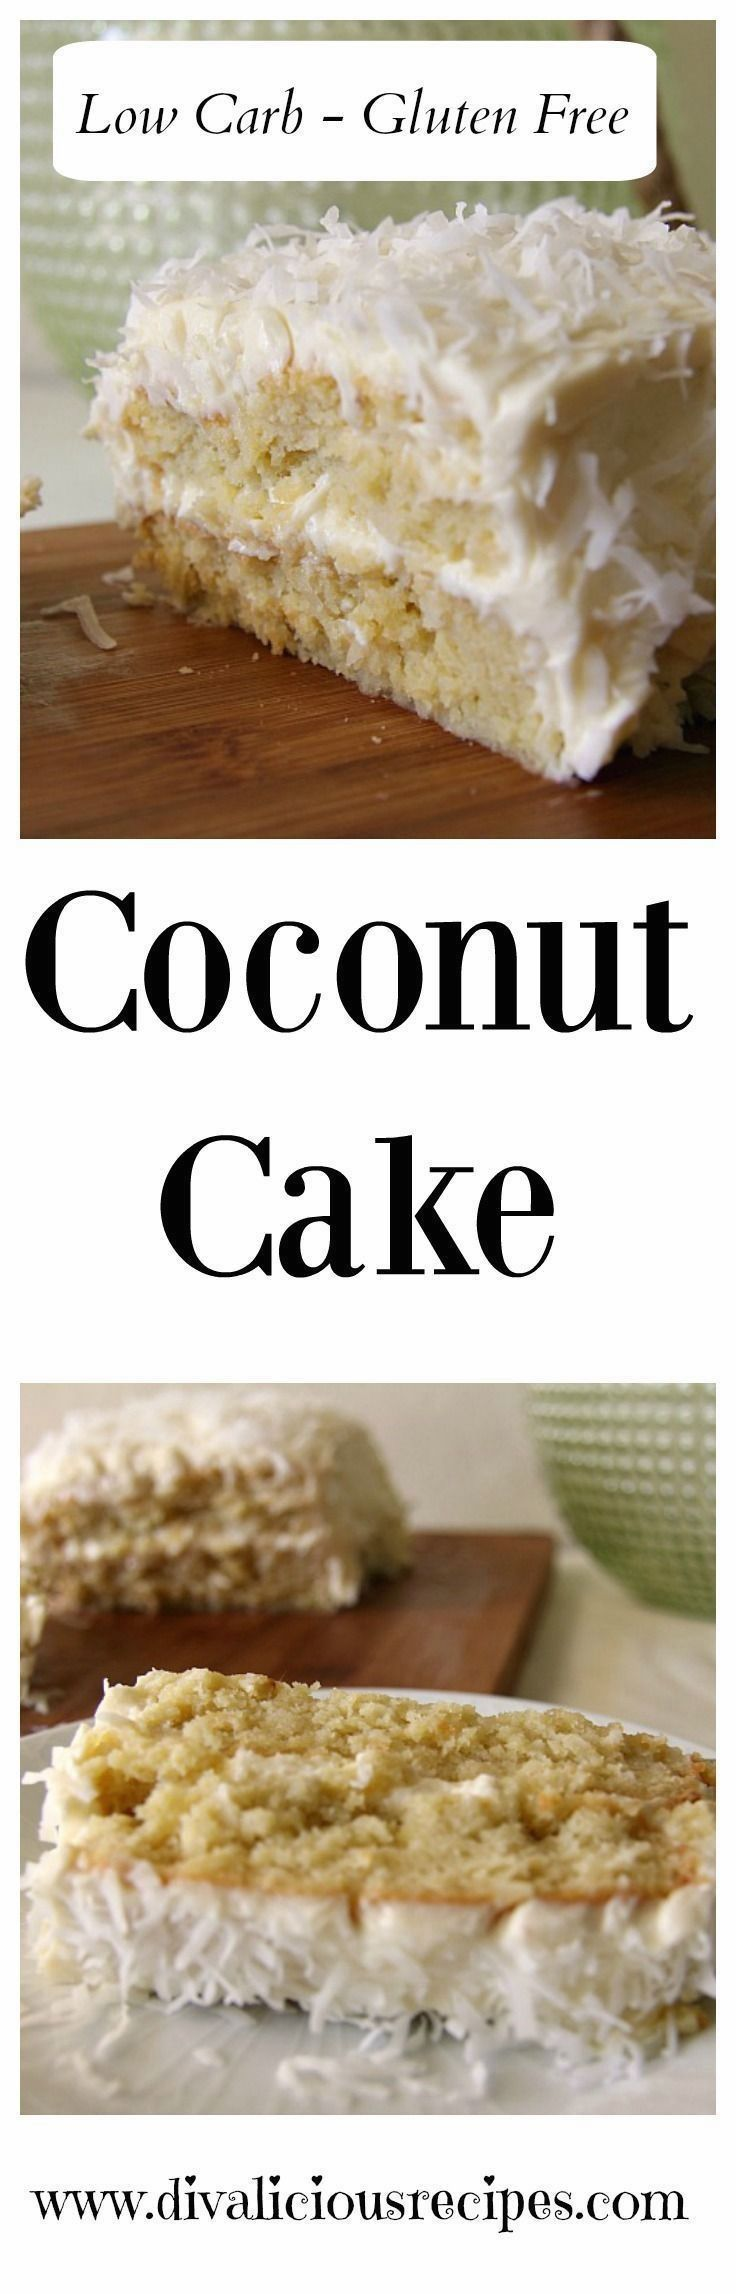 This low carb and gl This low carb and gluten free coconut cake is very moist in texture. It is for coconut lovers as it's made with coconut flour and decorated with coconut. Recipe: divaliciousrecipe...